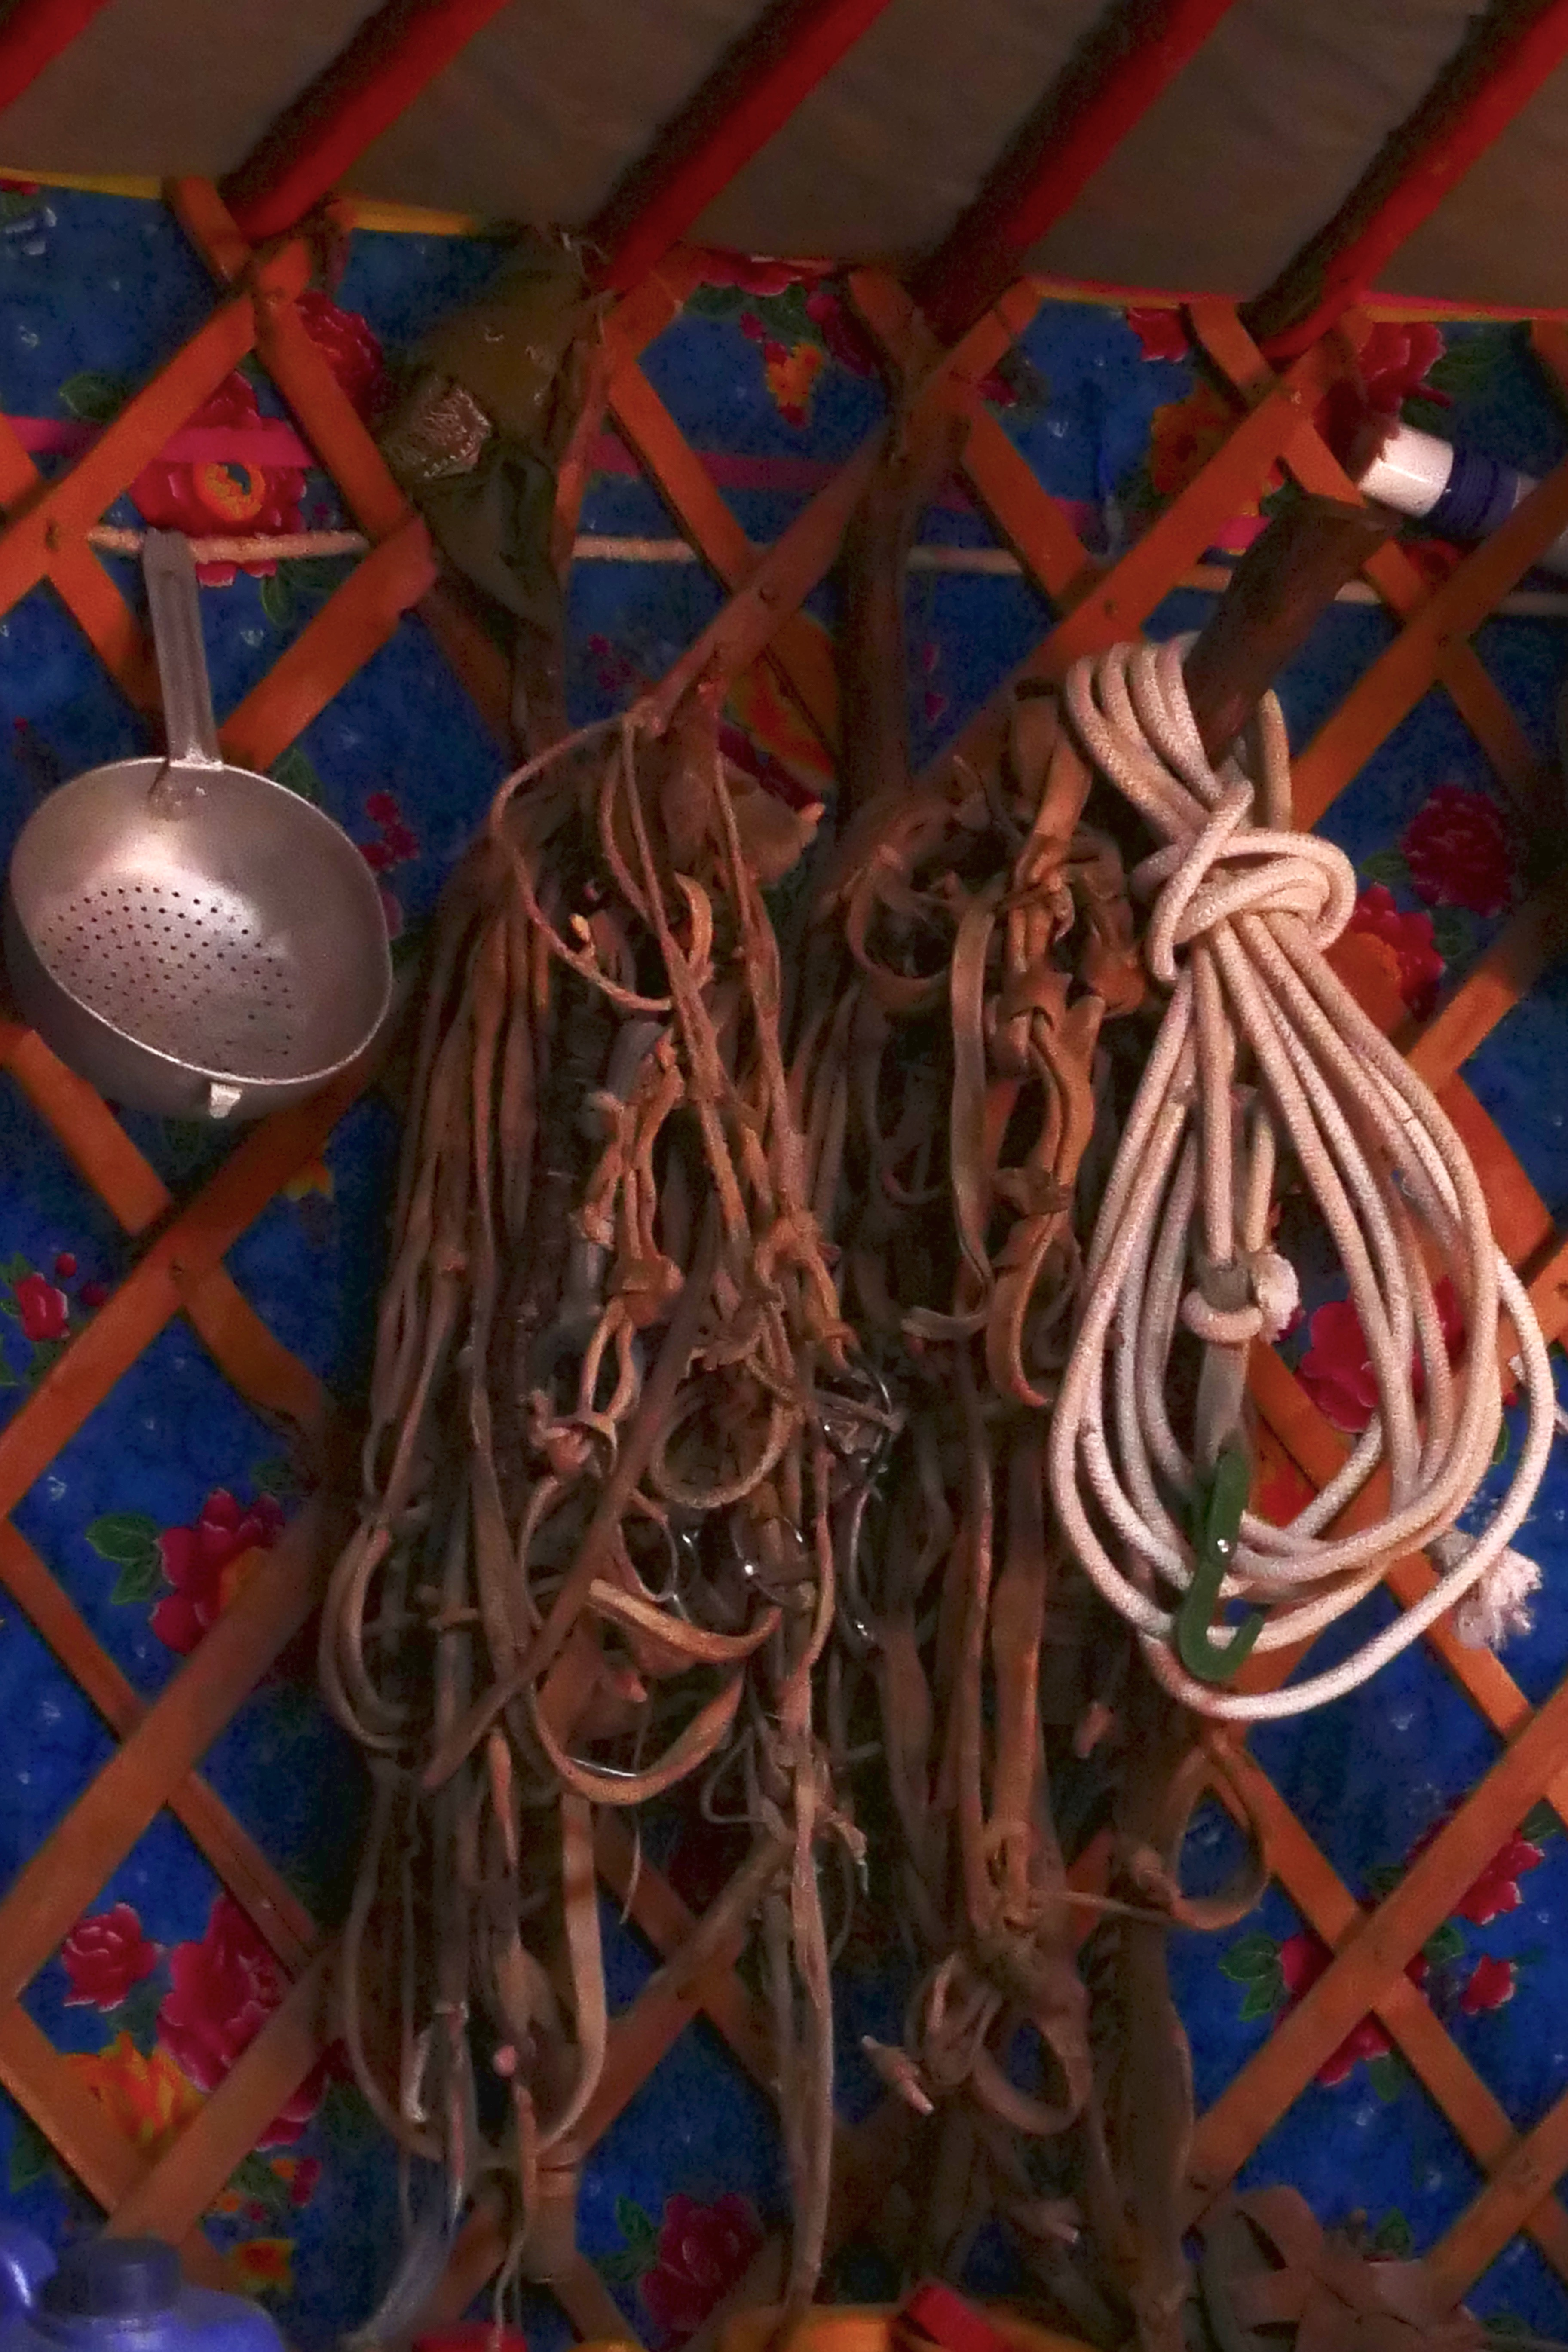 Mongolia: storing harnesses in the ger